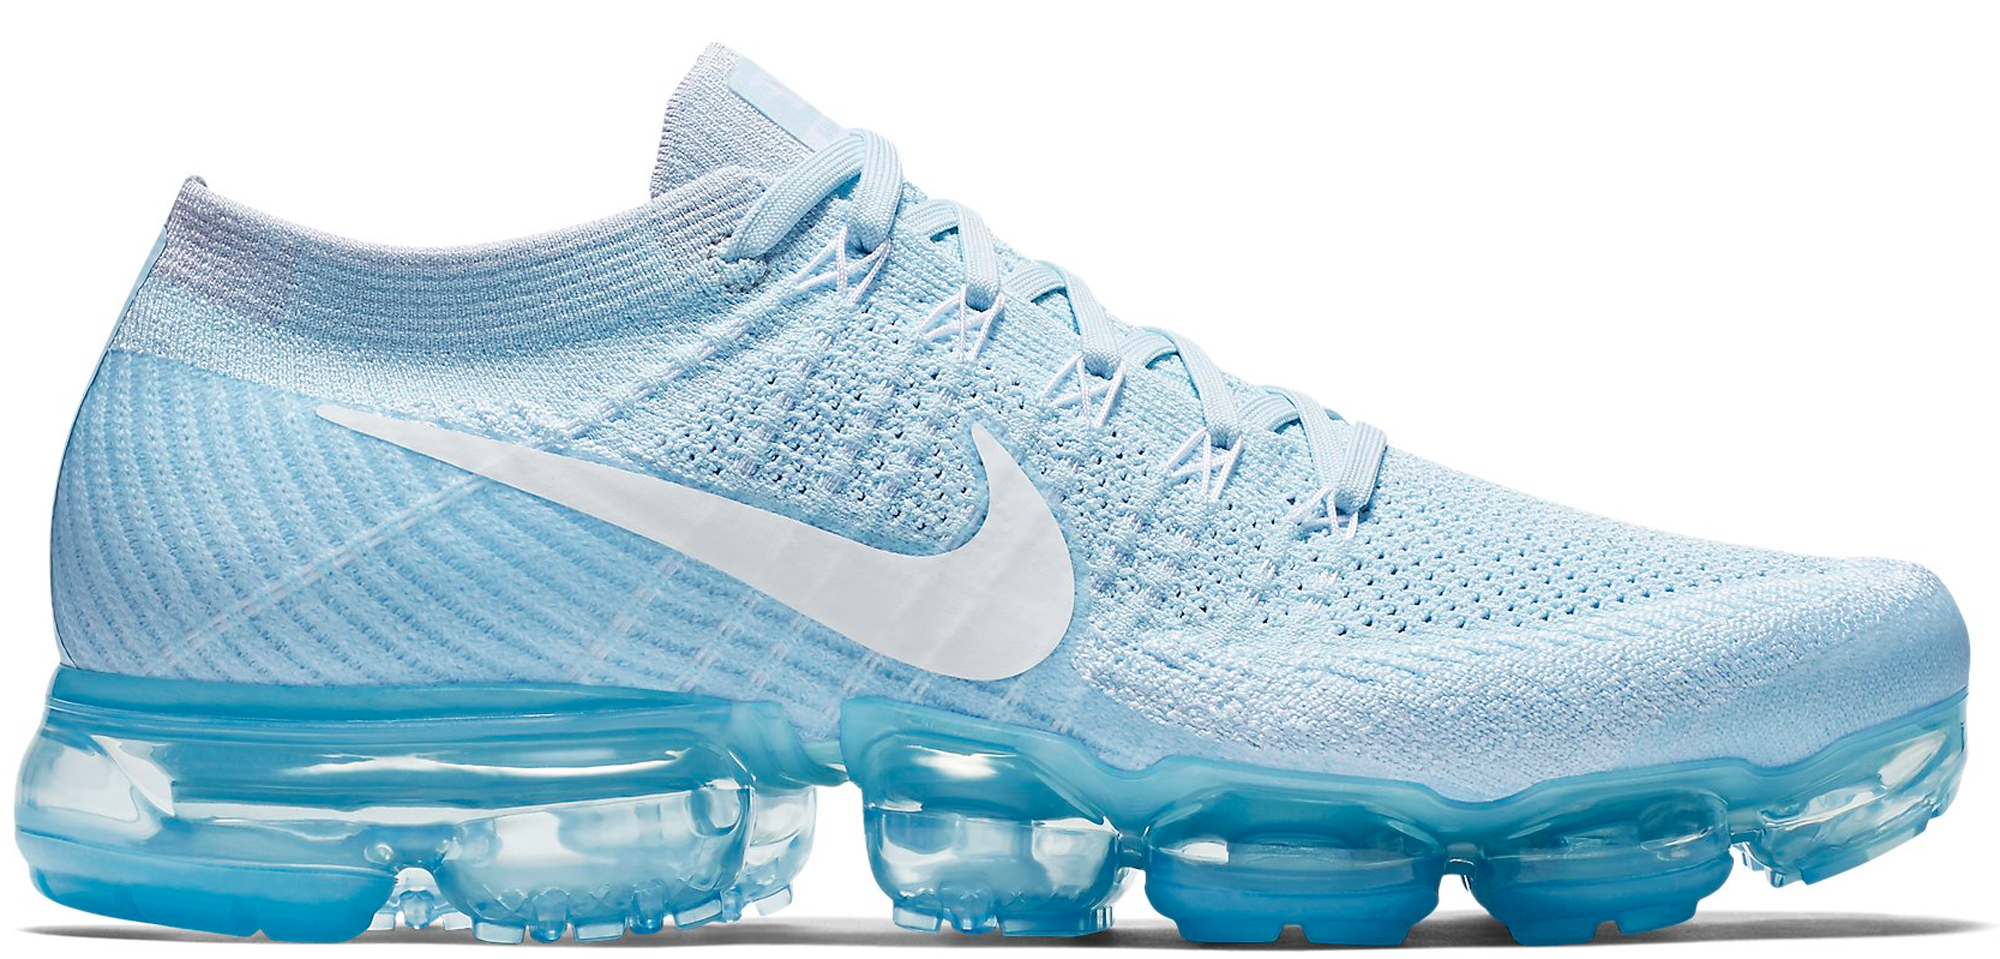 2c2932348386 Nike Air Vapor Max Glacier Blue - StockX News